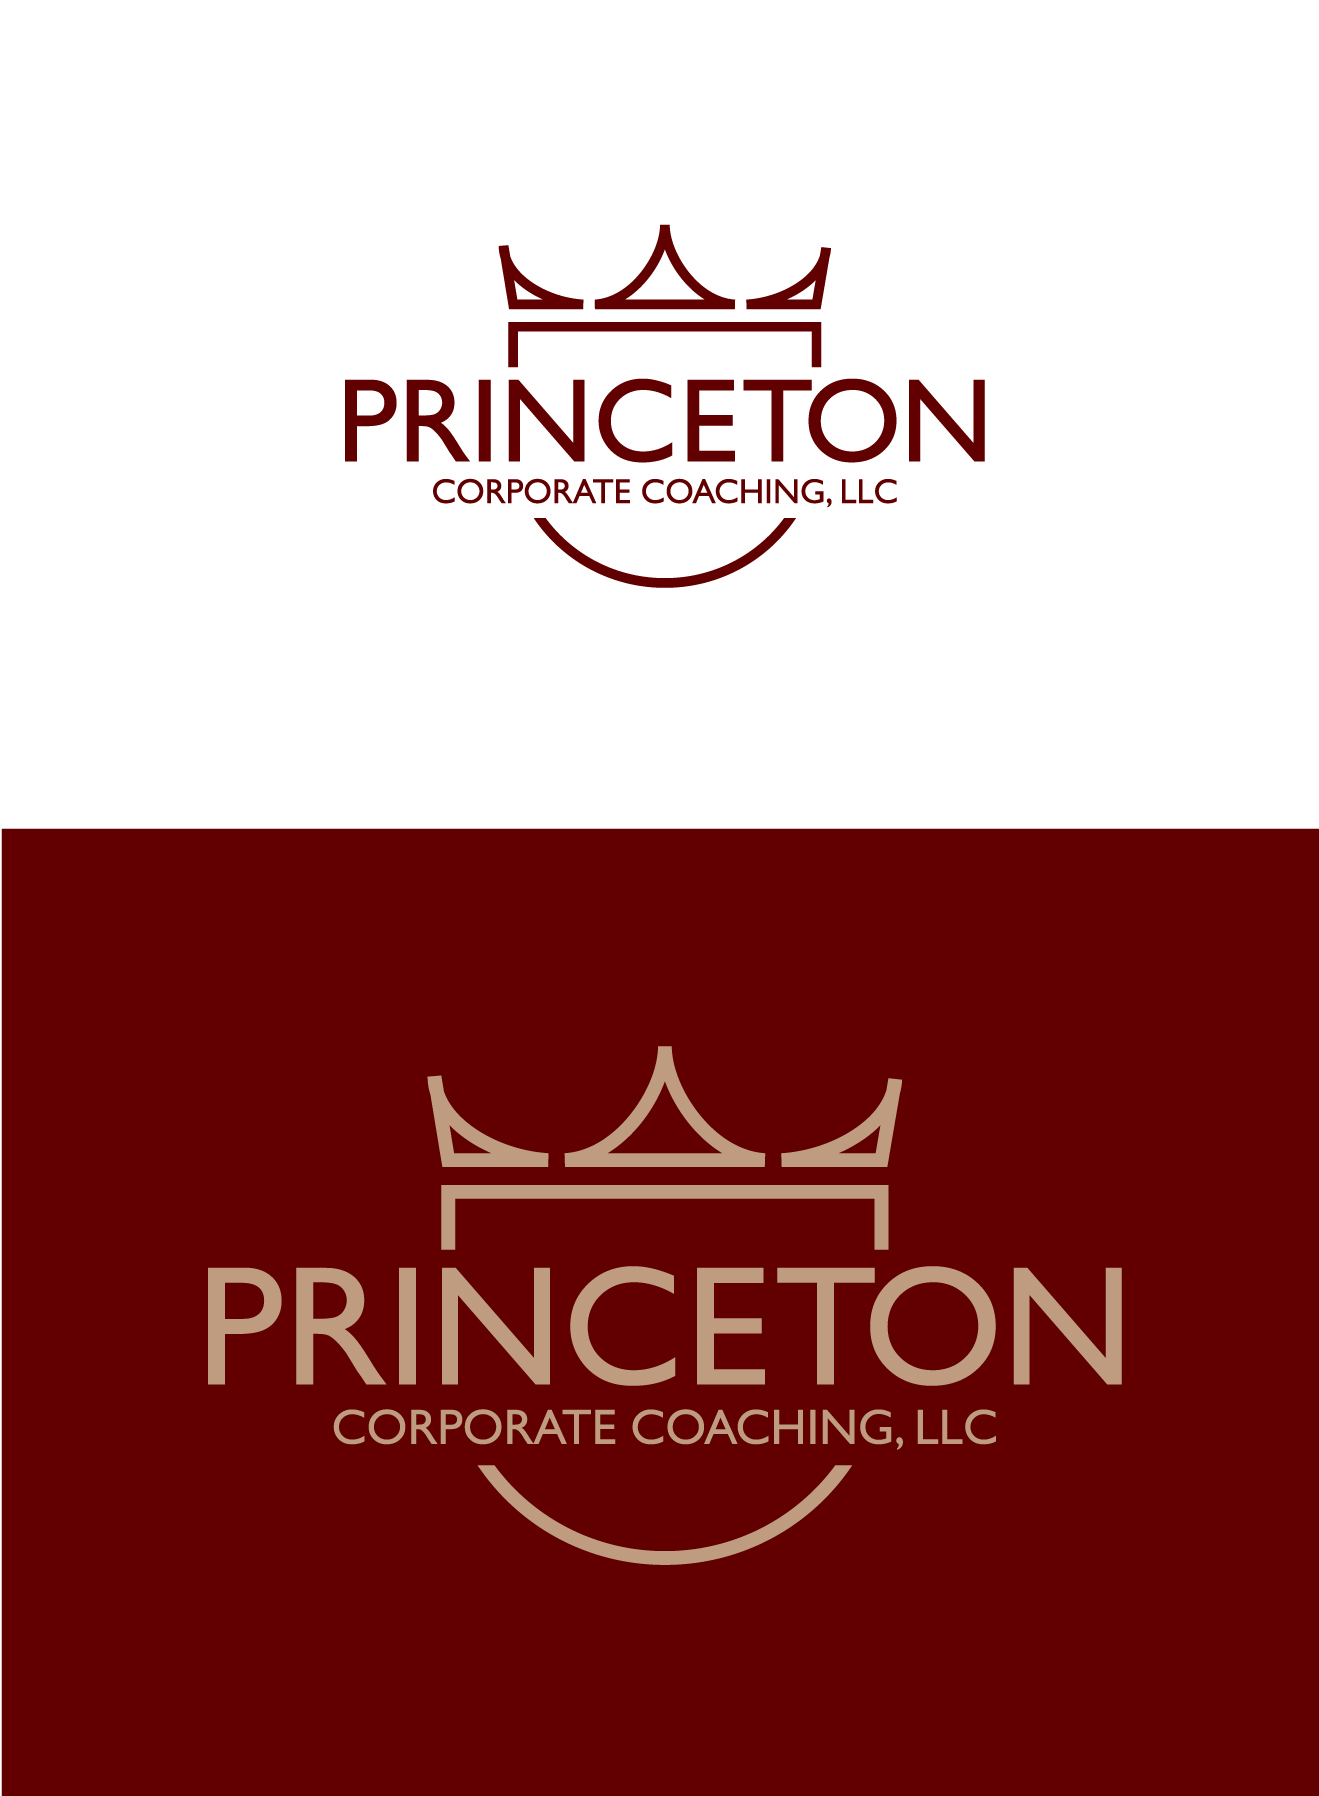 Logo Design by Wilfredo Mendoza - Entry No. 216 in the Logo Design Contest Unique Logo Design Wanted for Princeton Corporate Coaching, LLC.